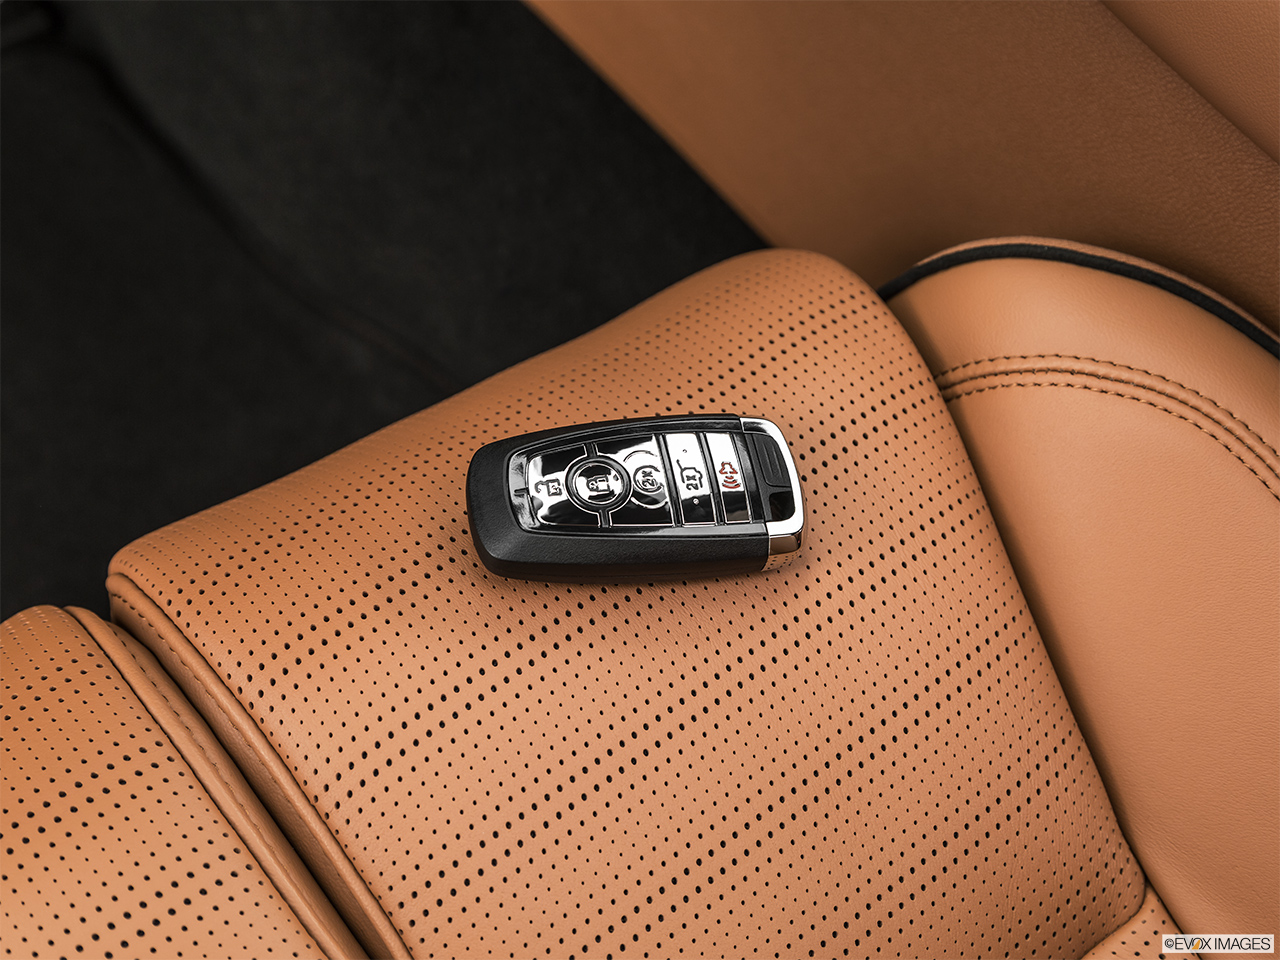 2020 Lincoln Aviator Black Label Key fob on driver's seat.